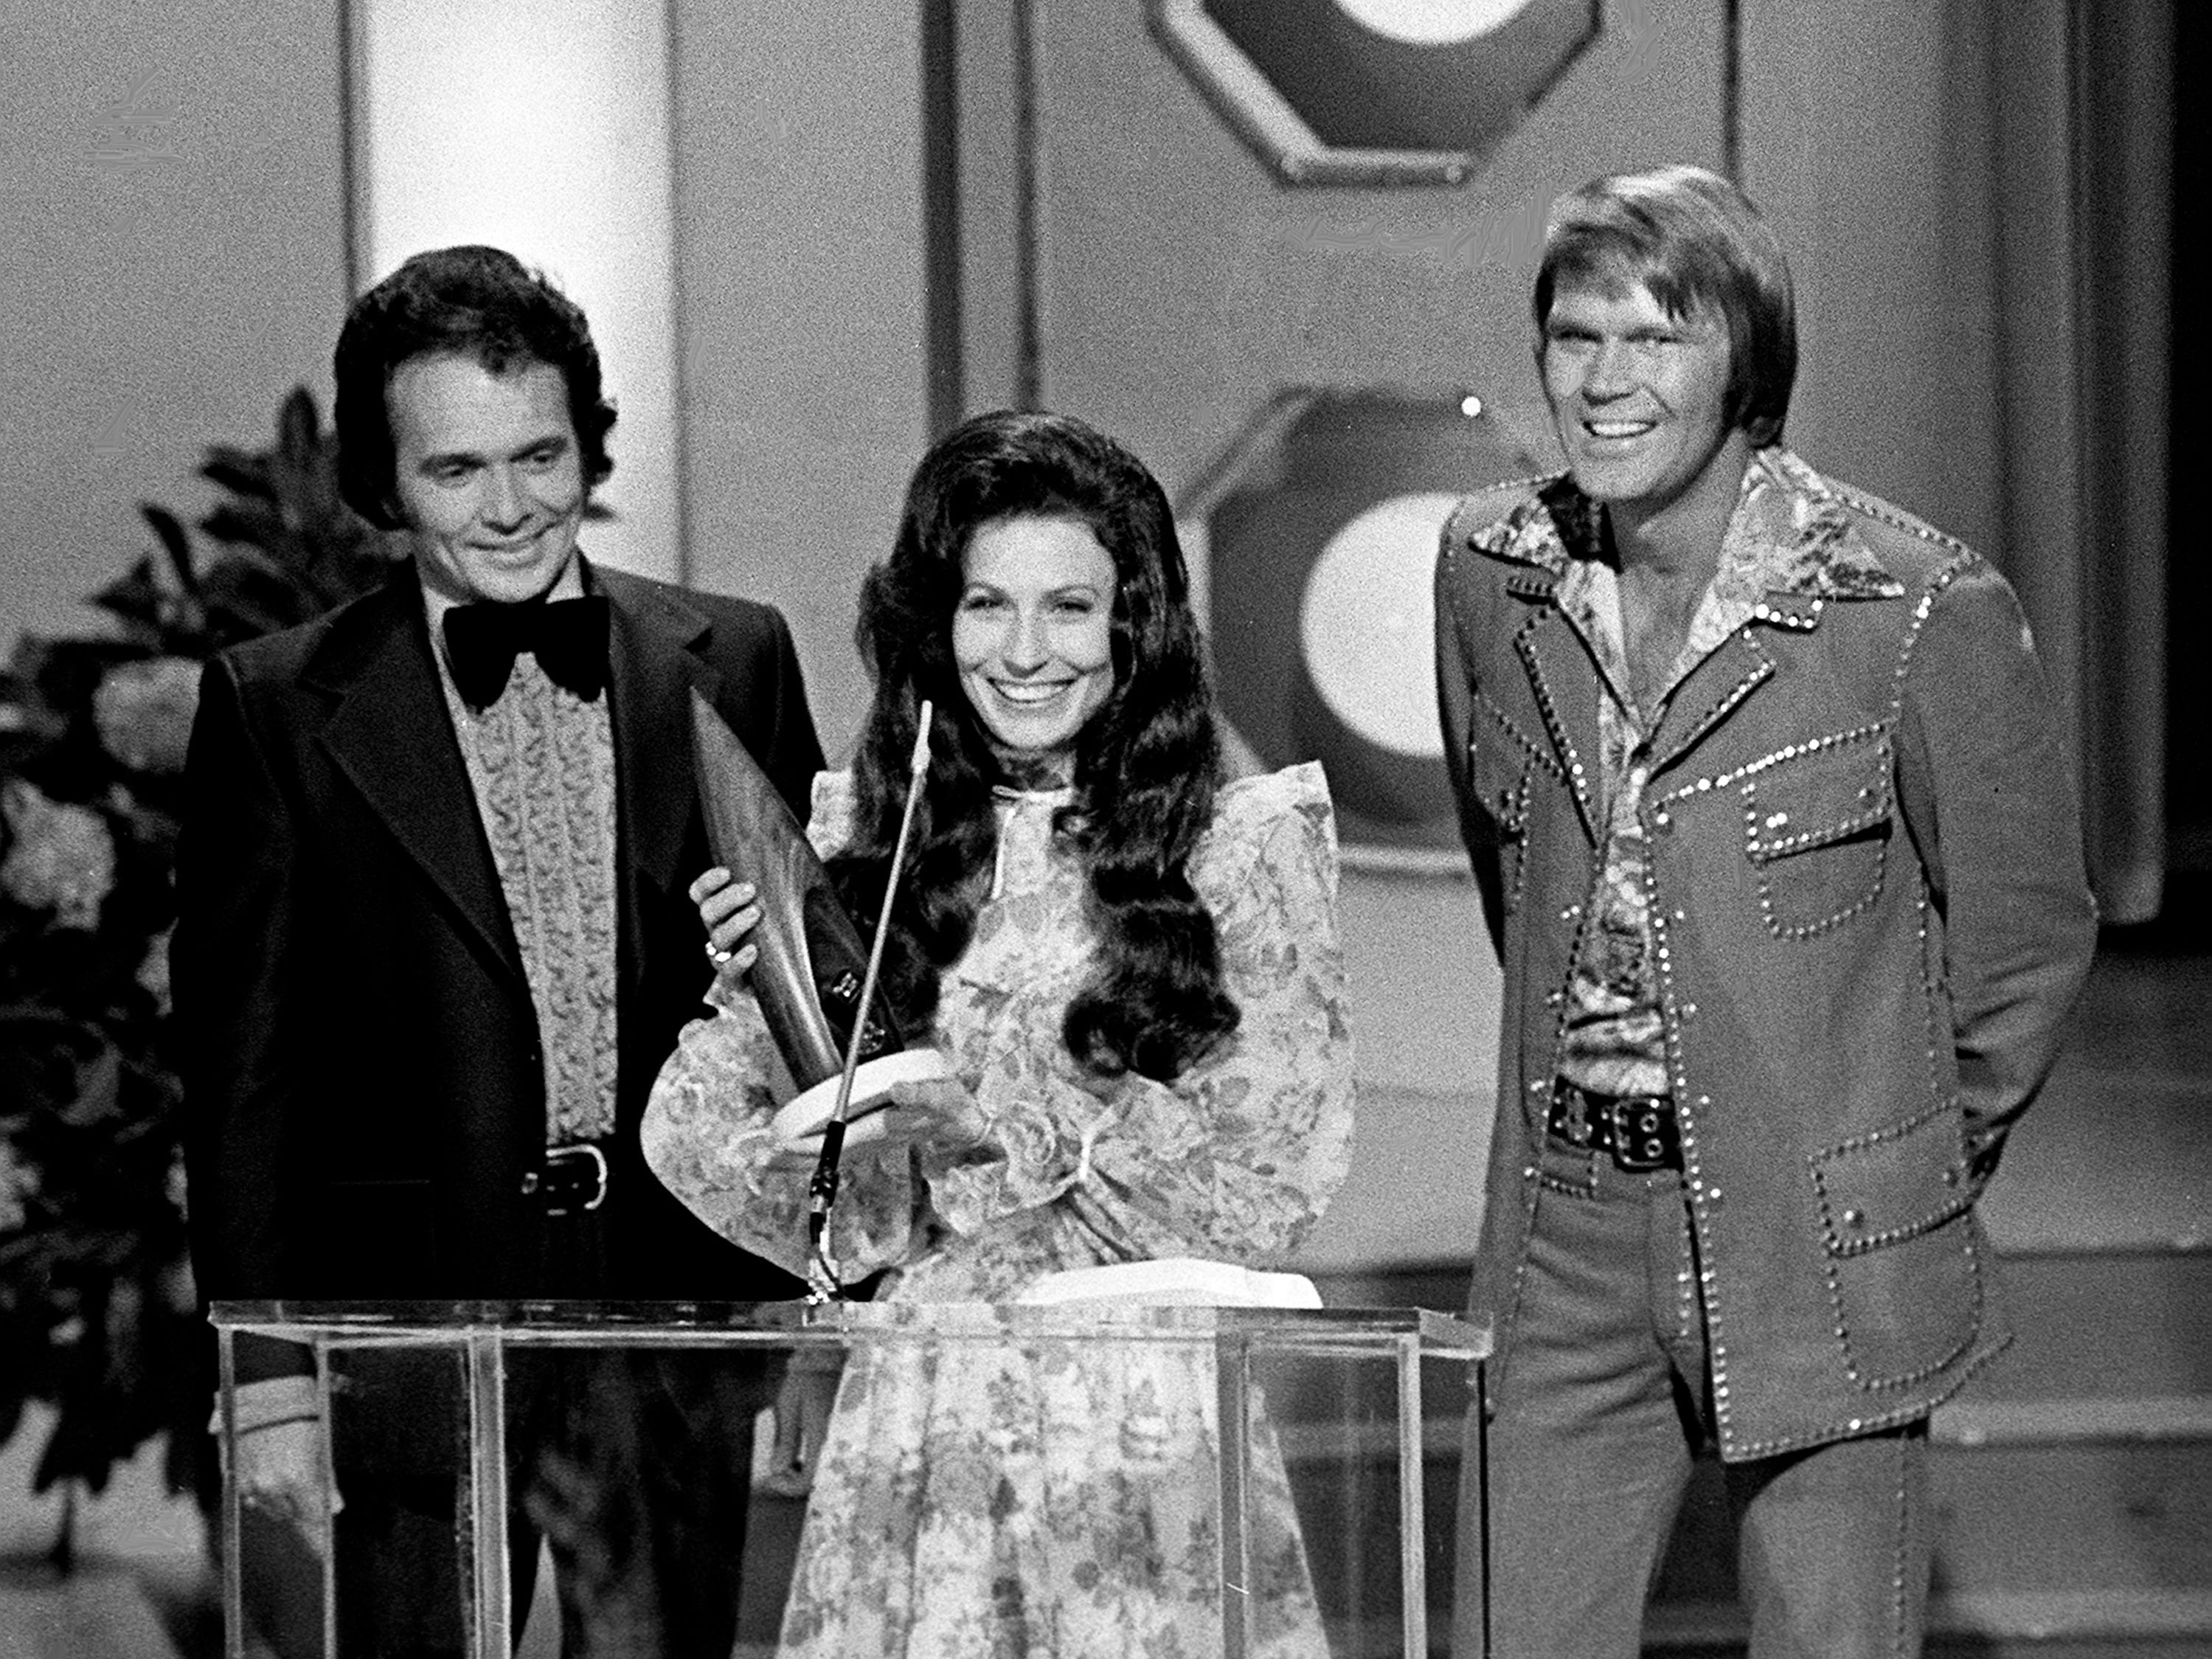 Loretta Lynn, center, accepts the Female Vocalist of the Year award at the seventh annual Country Music Awards show at the Ryman Auditorium. Looking on are presenters Merle Haggard, left, and Glen Campbell.